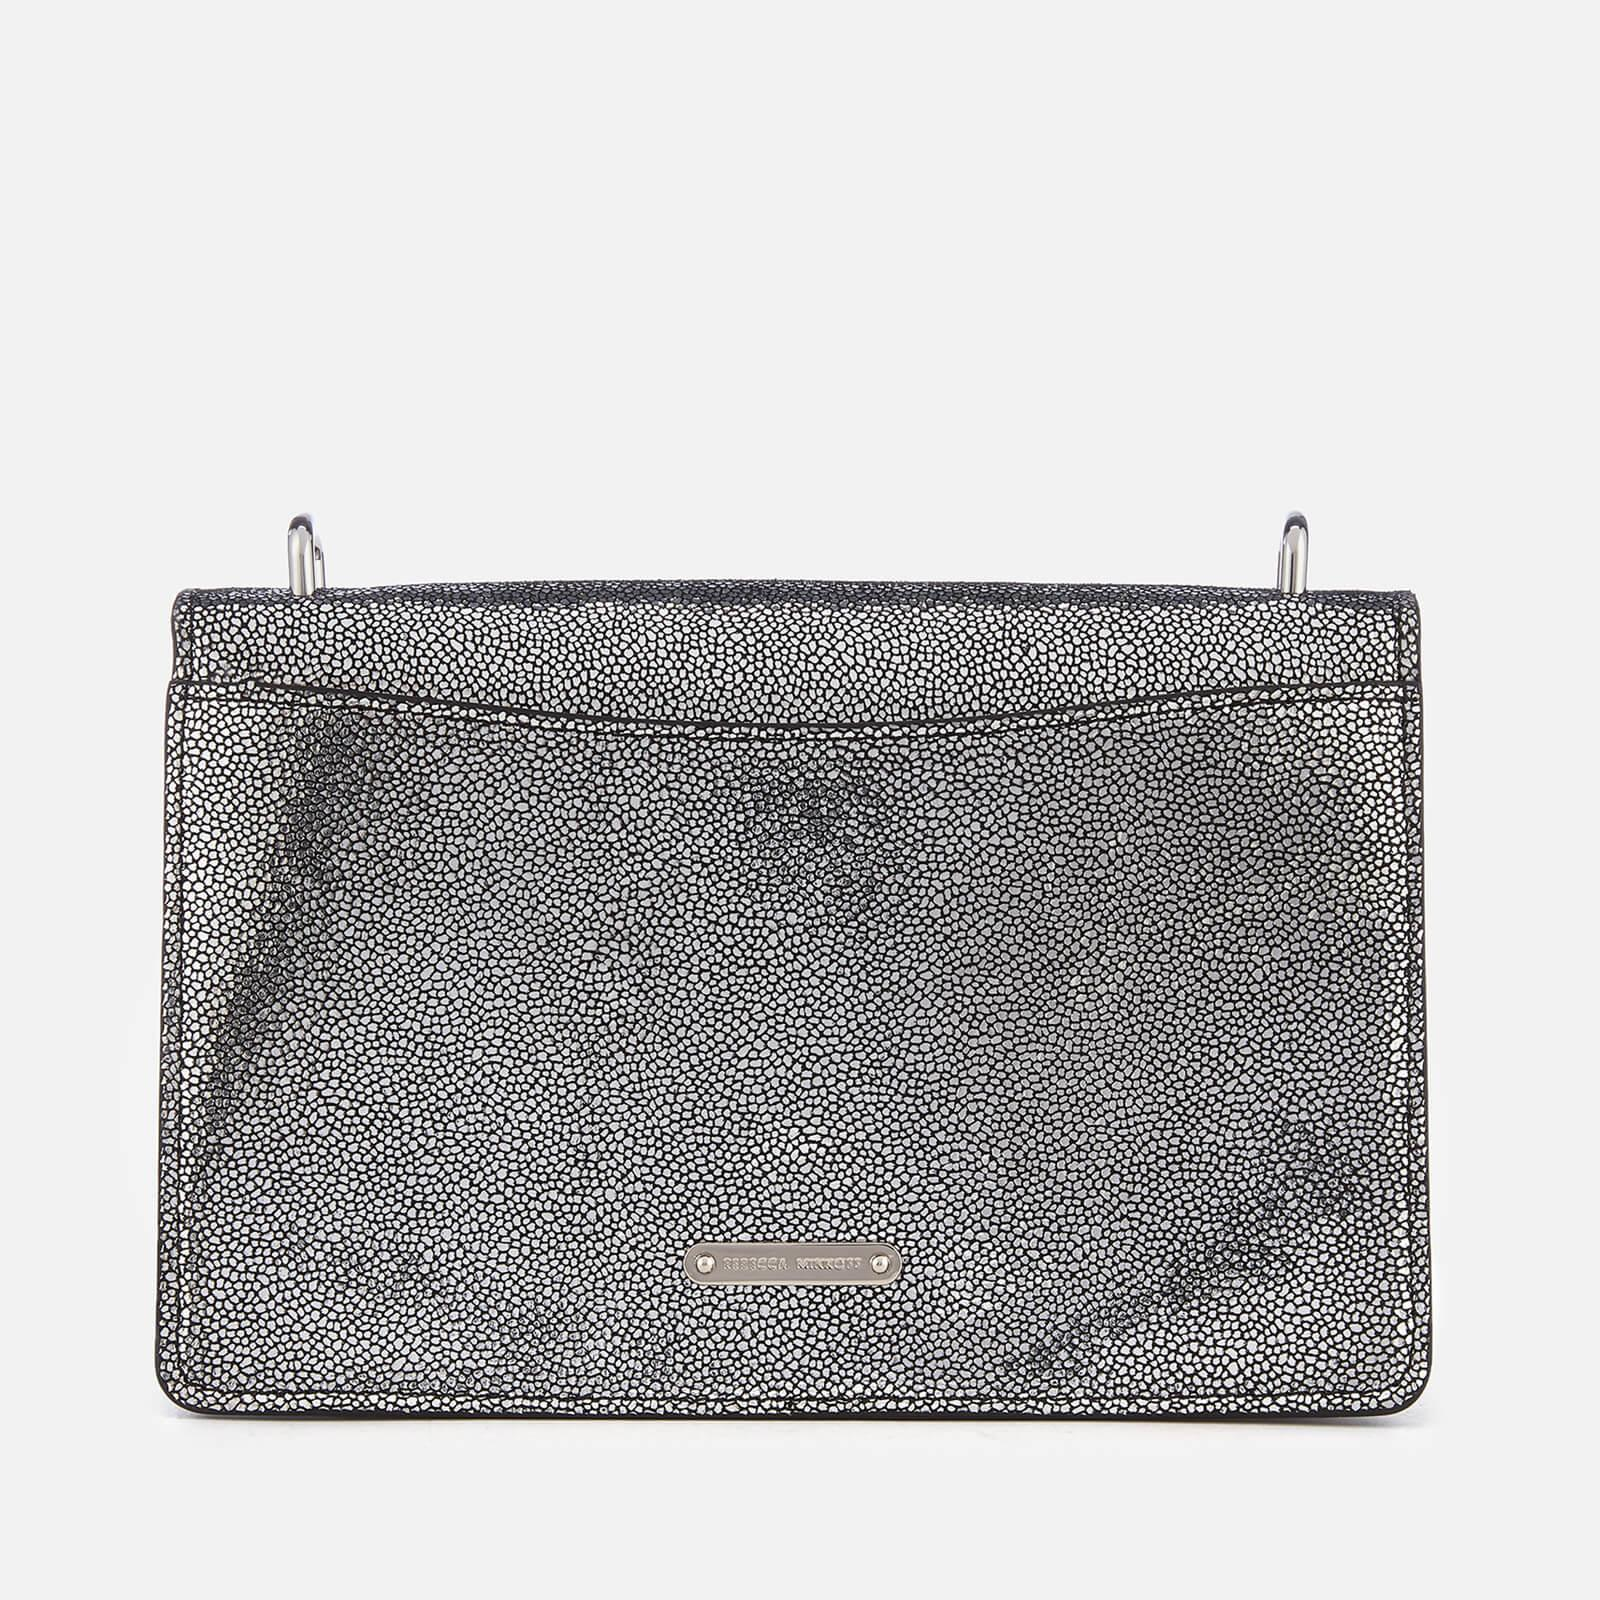 96034da534c5 Rebecca Minkoff - Multicolor Metallic Jean Medium Shoulder Bag - Lyst. View  fullscreen